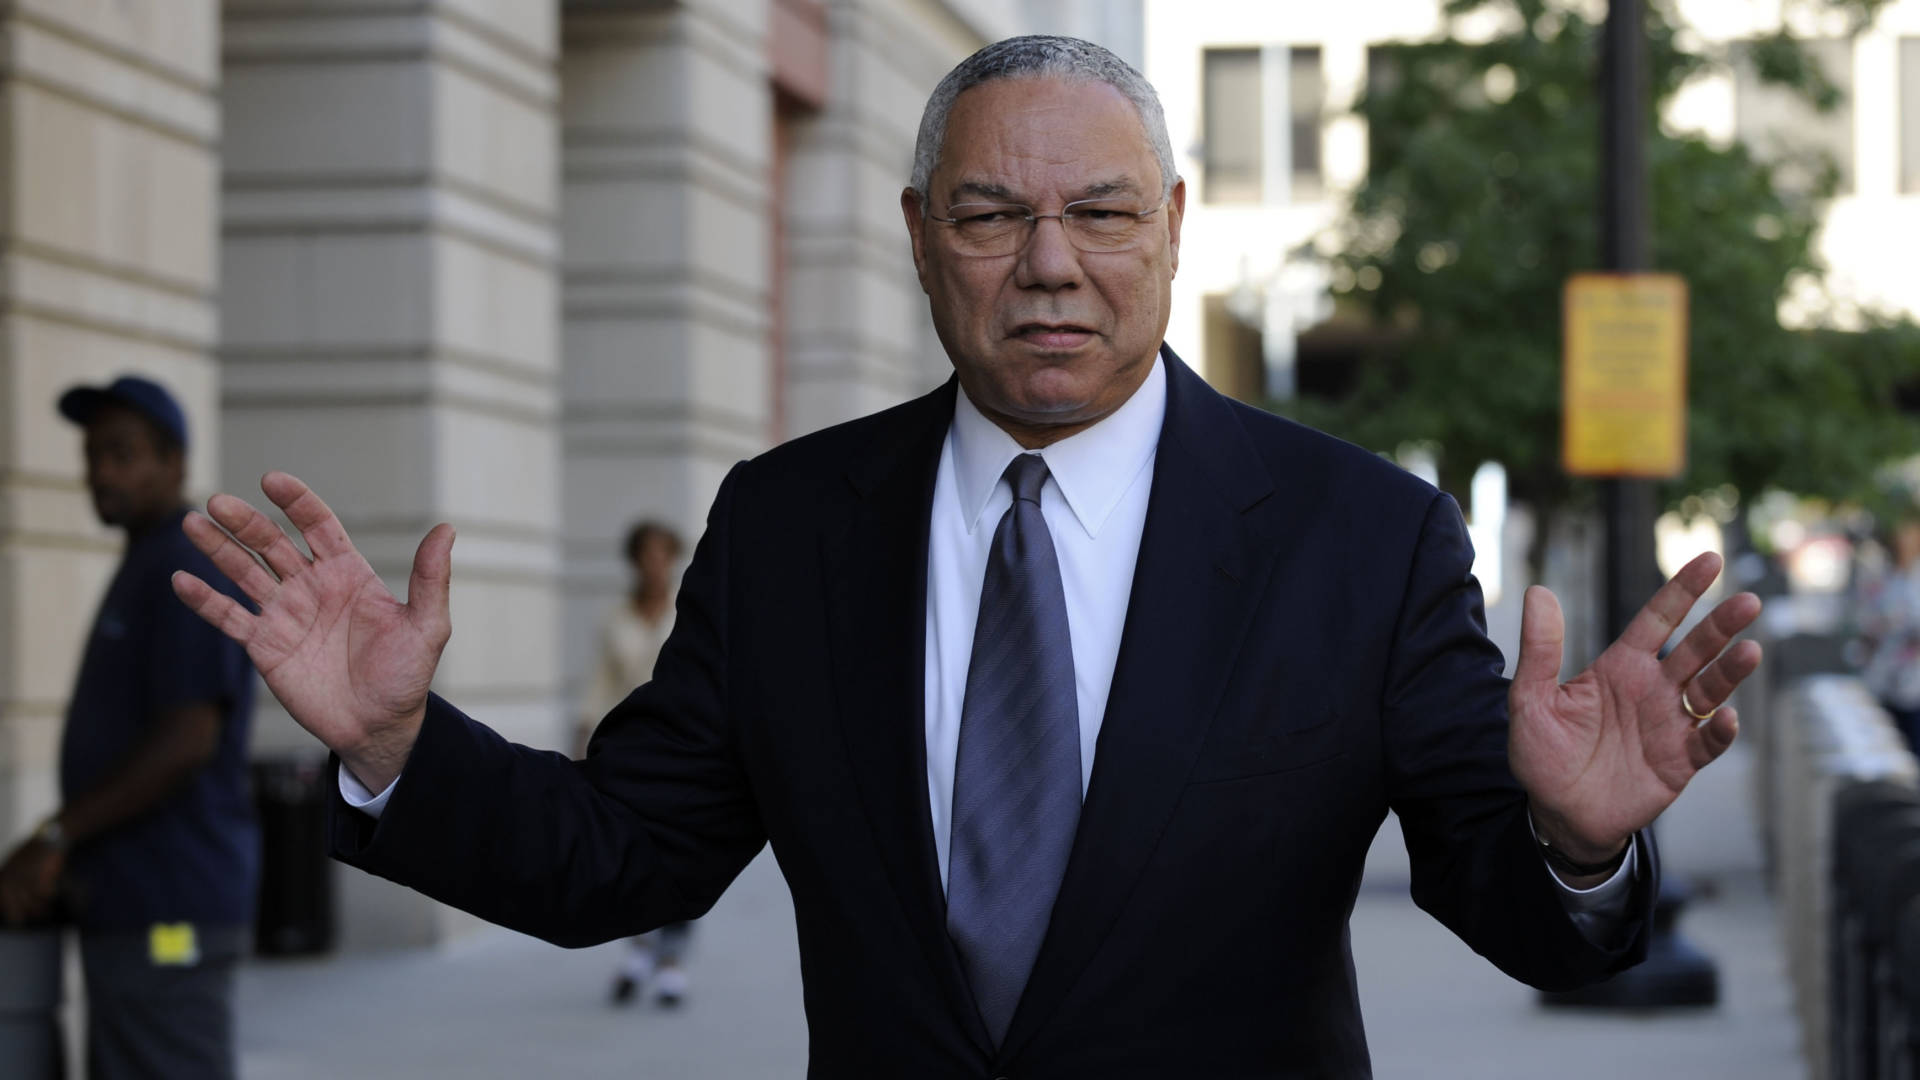 Colin Powell: Trump a 'National Disgrace'; Clinton 'Screws Up' Everything 'With Hubris'